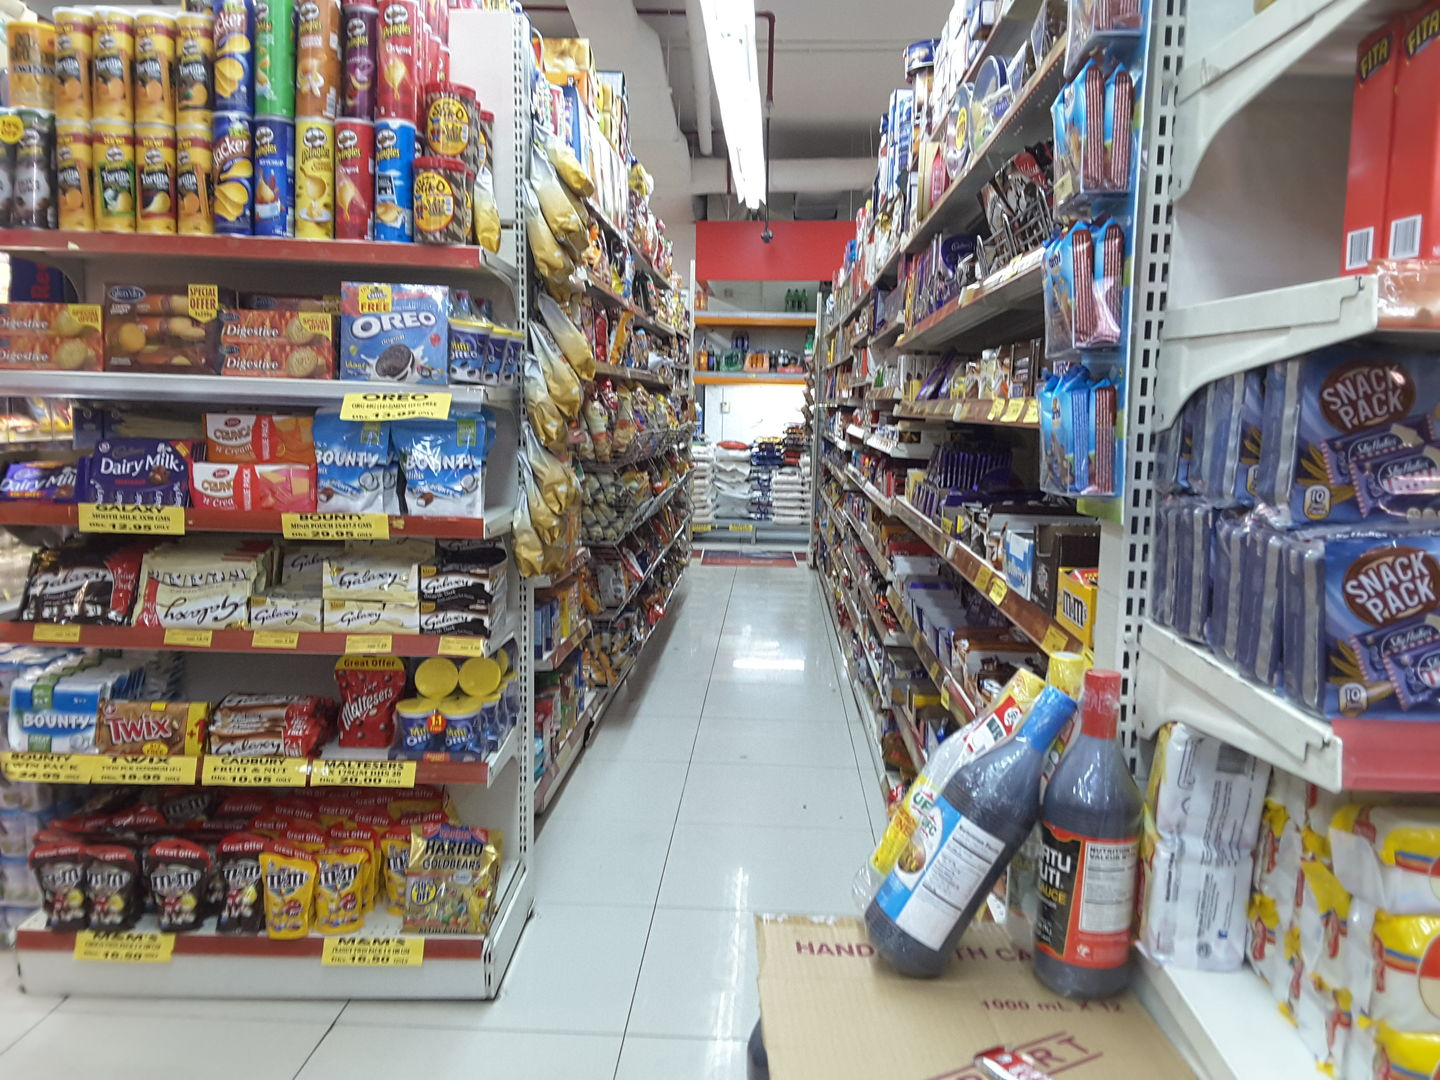 HiDubai-business-nwz-west-zone-supermarket-shopping-supermarkets-hypermarkets-grocery-stores-al-barsha-1-dubai-2